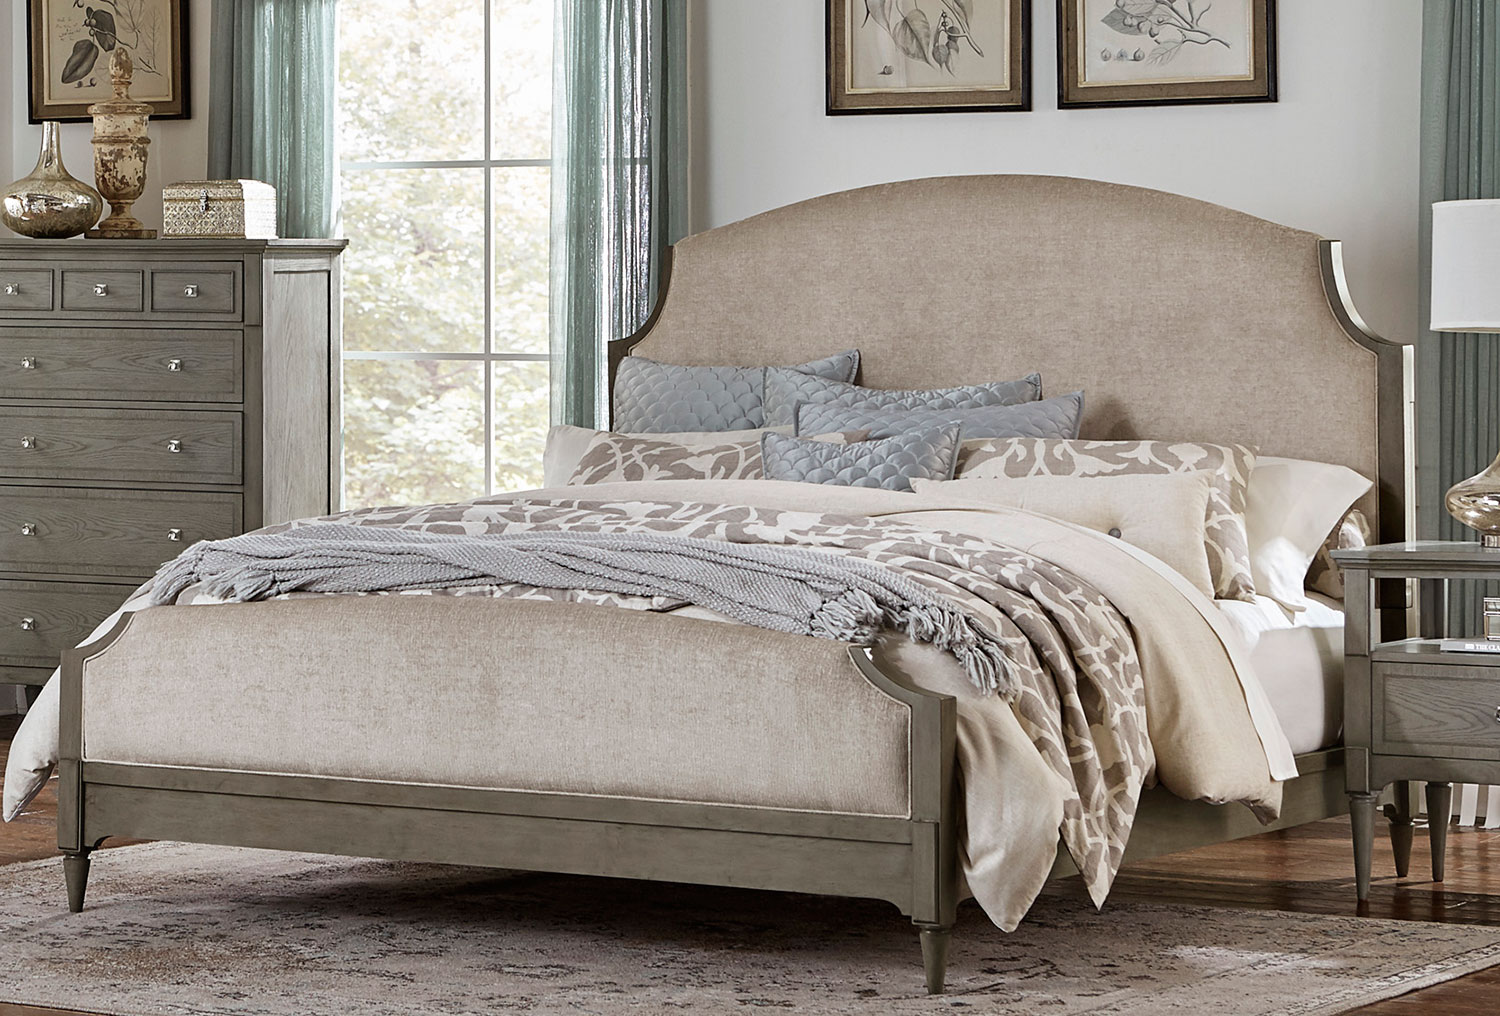 Homelegance Albright Upholstered Bed - Barnwood Grey